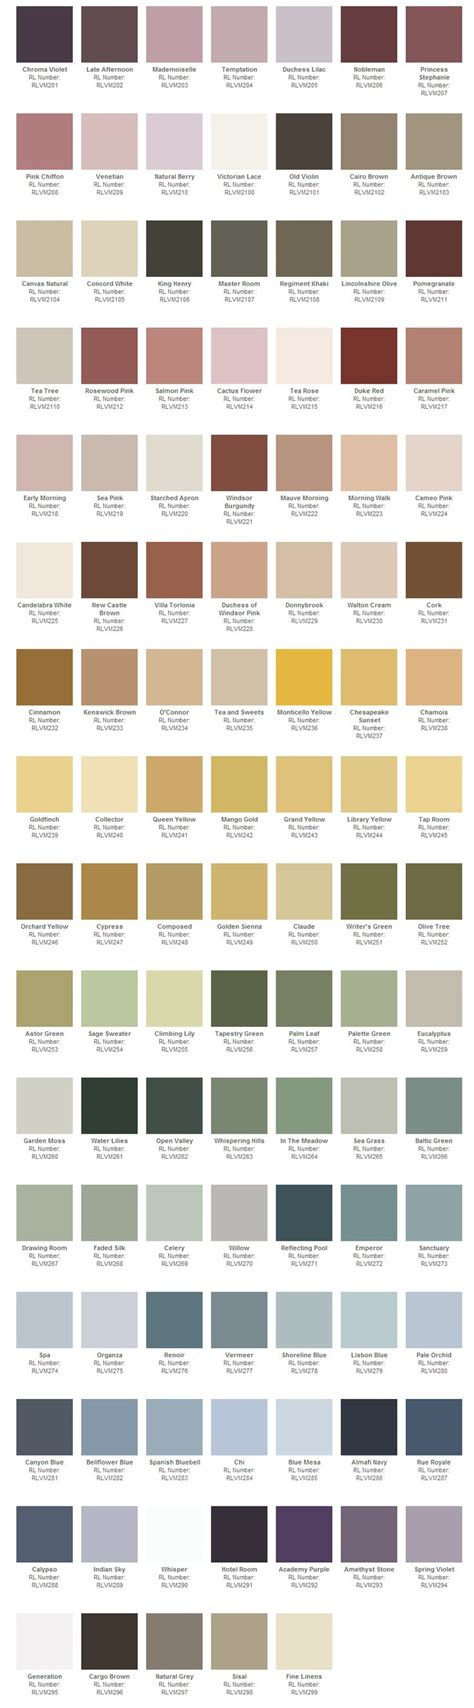 ralph paint color finder ralph paint shades colors paint